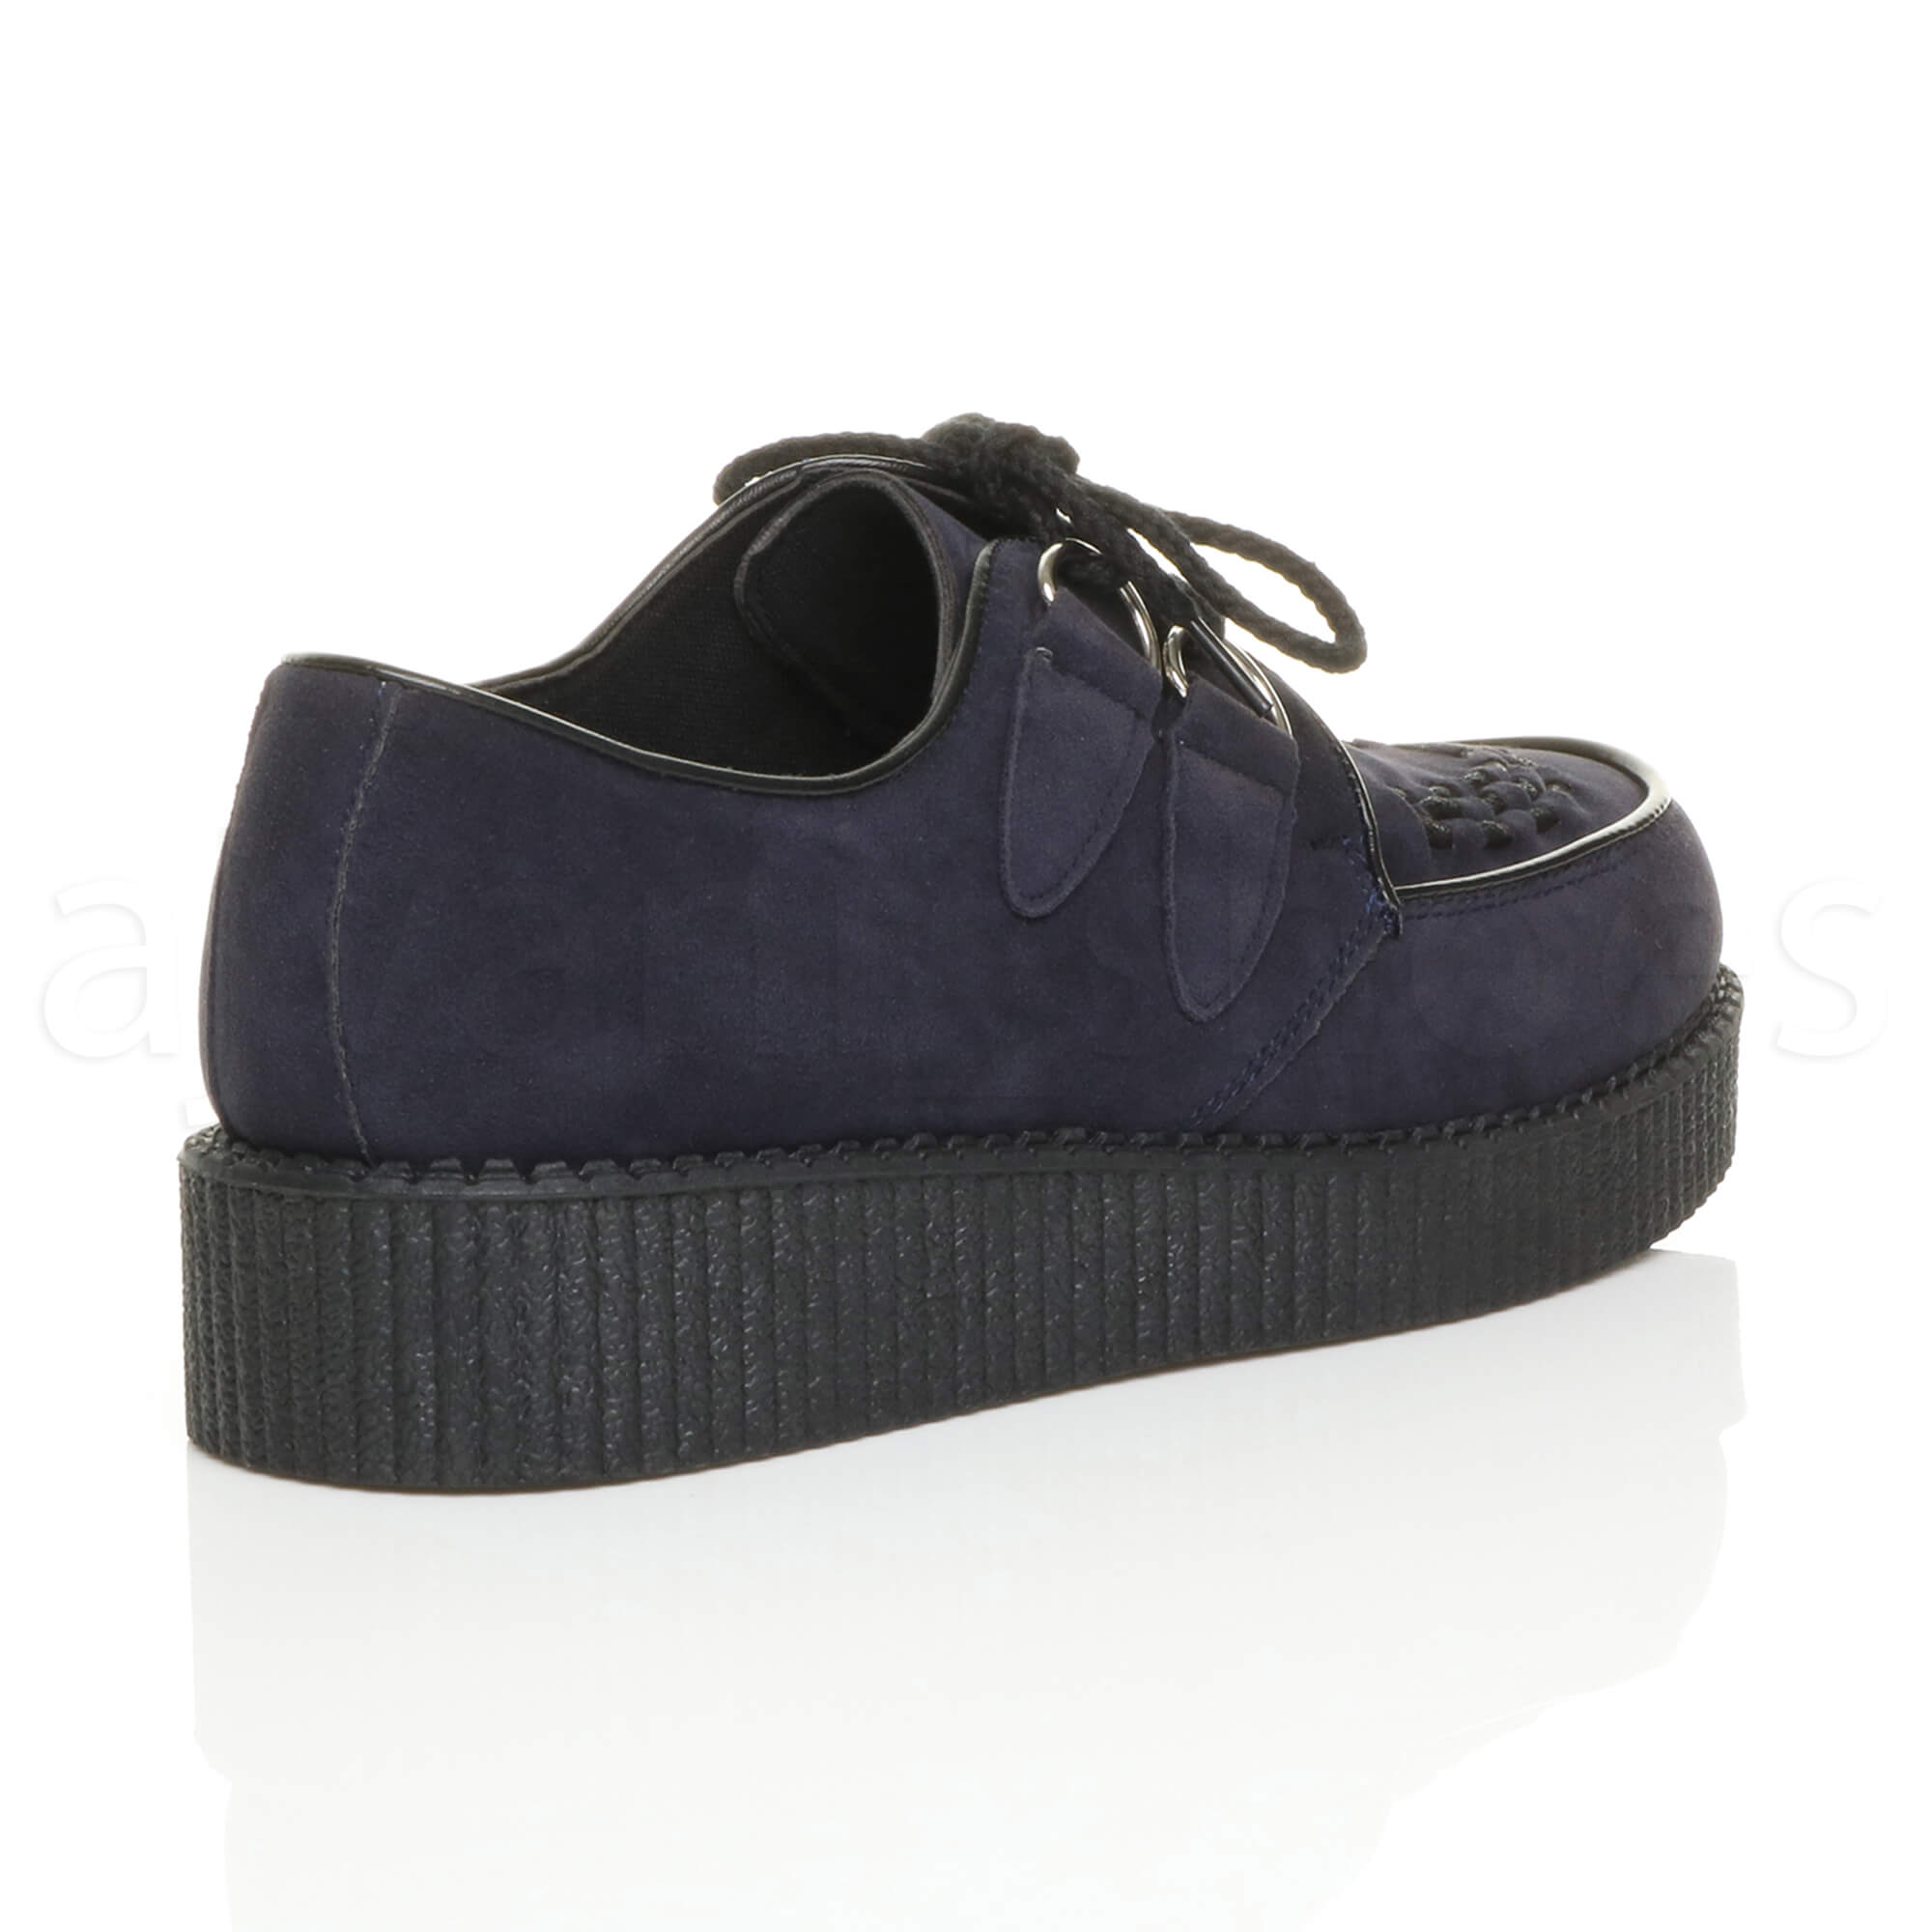 MENS-PLATFORM-WEDGE-LACE-UP-GOTH-PUNK-BROTHEL-CREEPERS-BEETLE-CRUSHERS-SHOES thumbnail 40